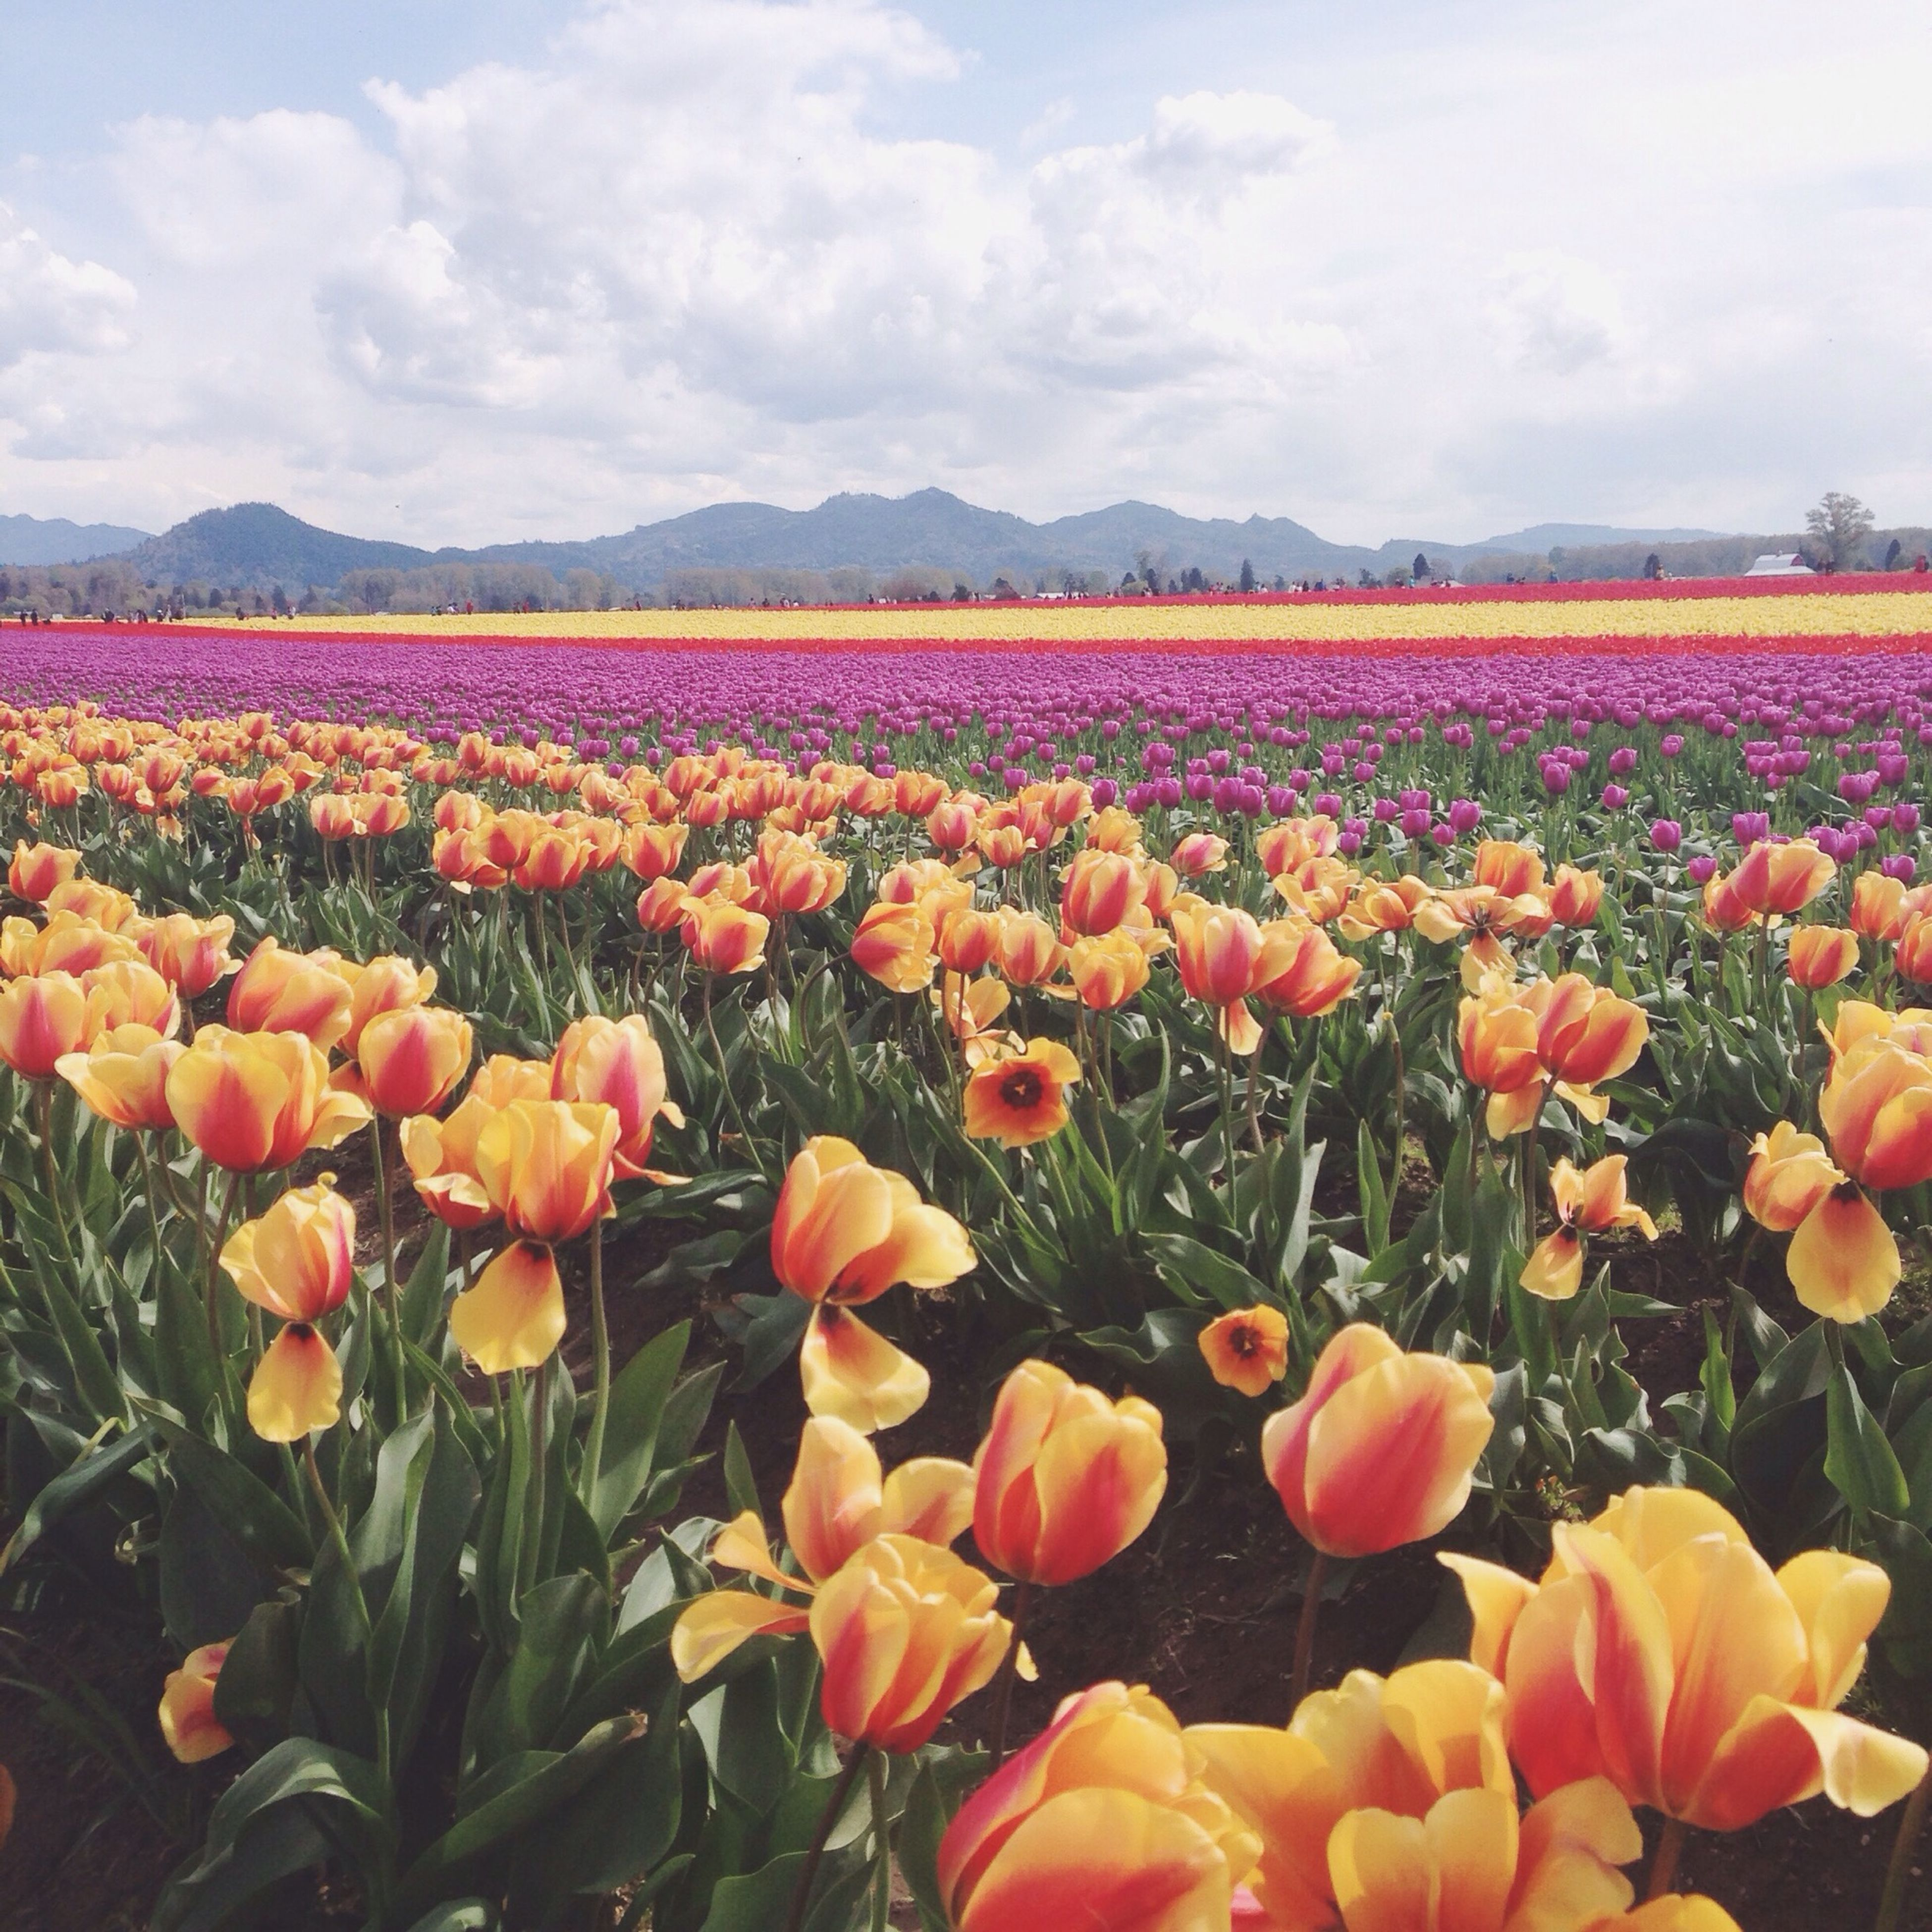 flower, field, freshness, beauty in nature, fragility, sky, growth, landscape, nature, blooming, petal, cloud - sky, abundance, tranquil scene, plant, scenics, rural scene, tranquility, flower head, tulip